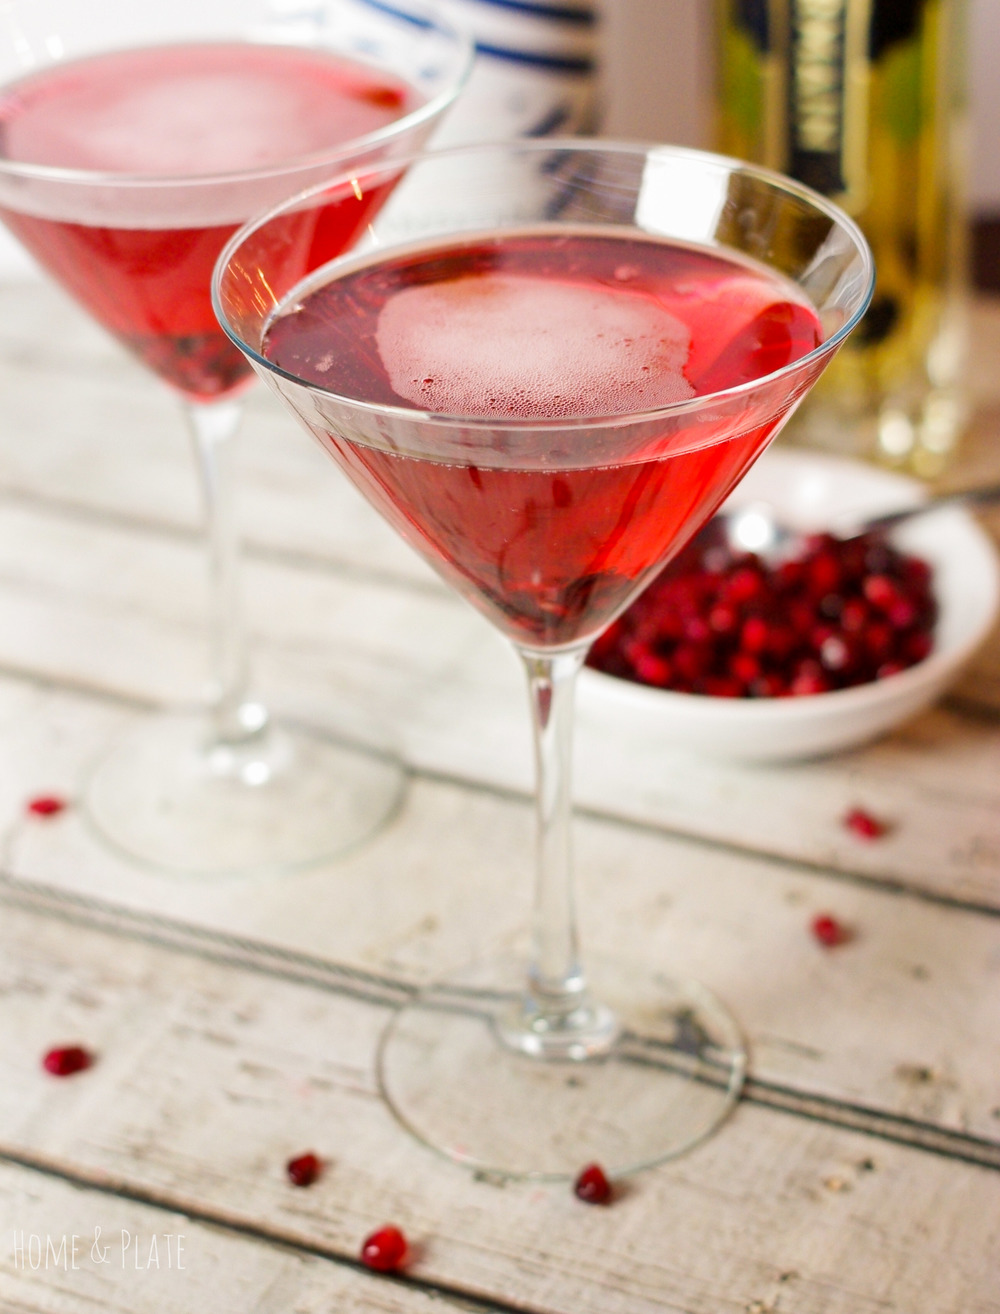 Sparkling Elderflower Pomegranate Spritzers | www.homeandplate.com | This cocktail is sweet and tart and is the perfect option for any festive gathering including Christmas Day and your New Year's eve party.